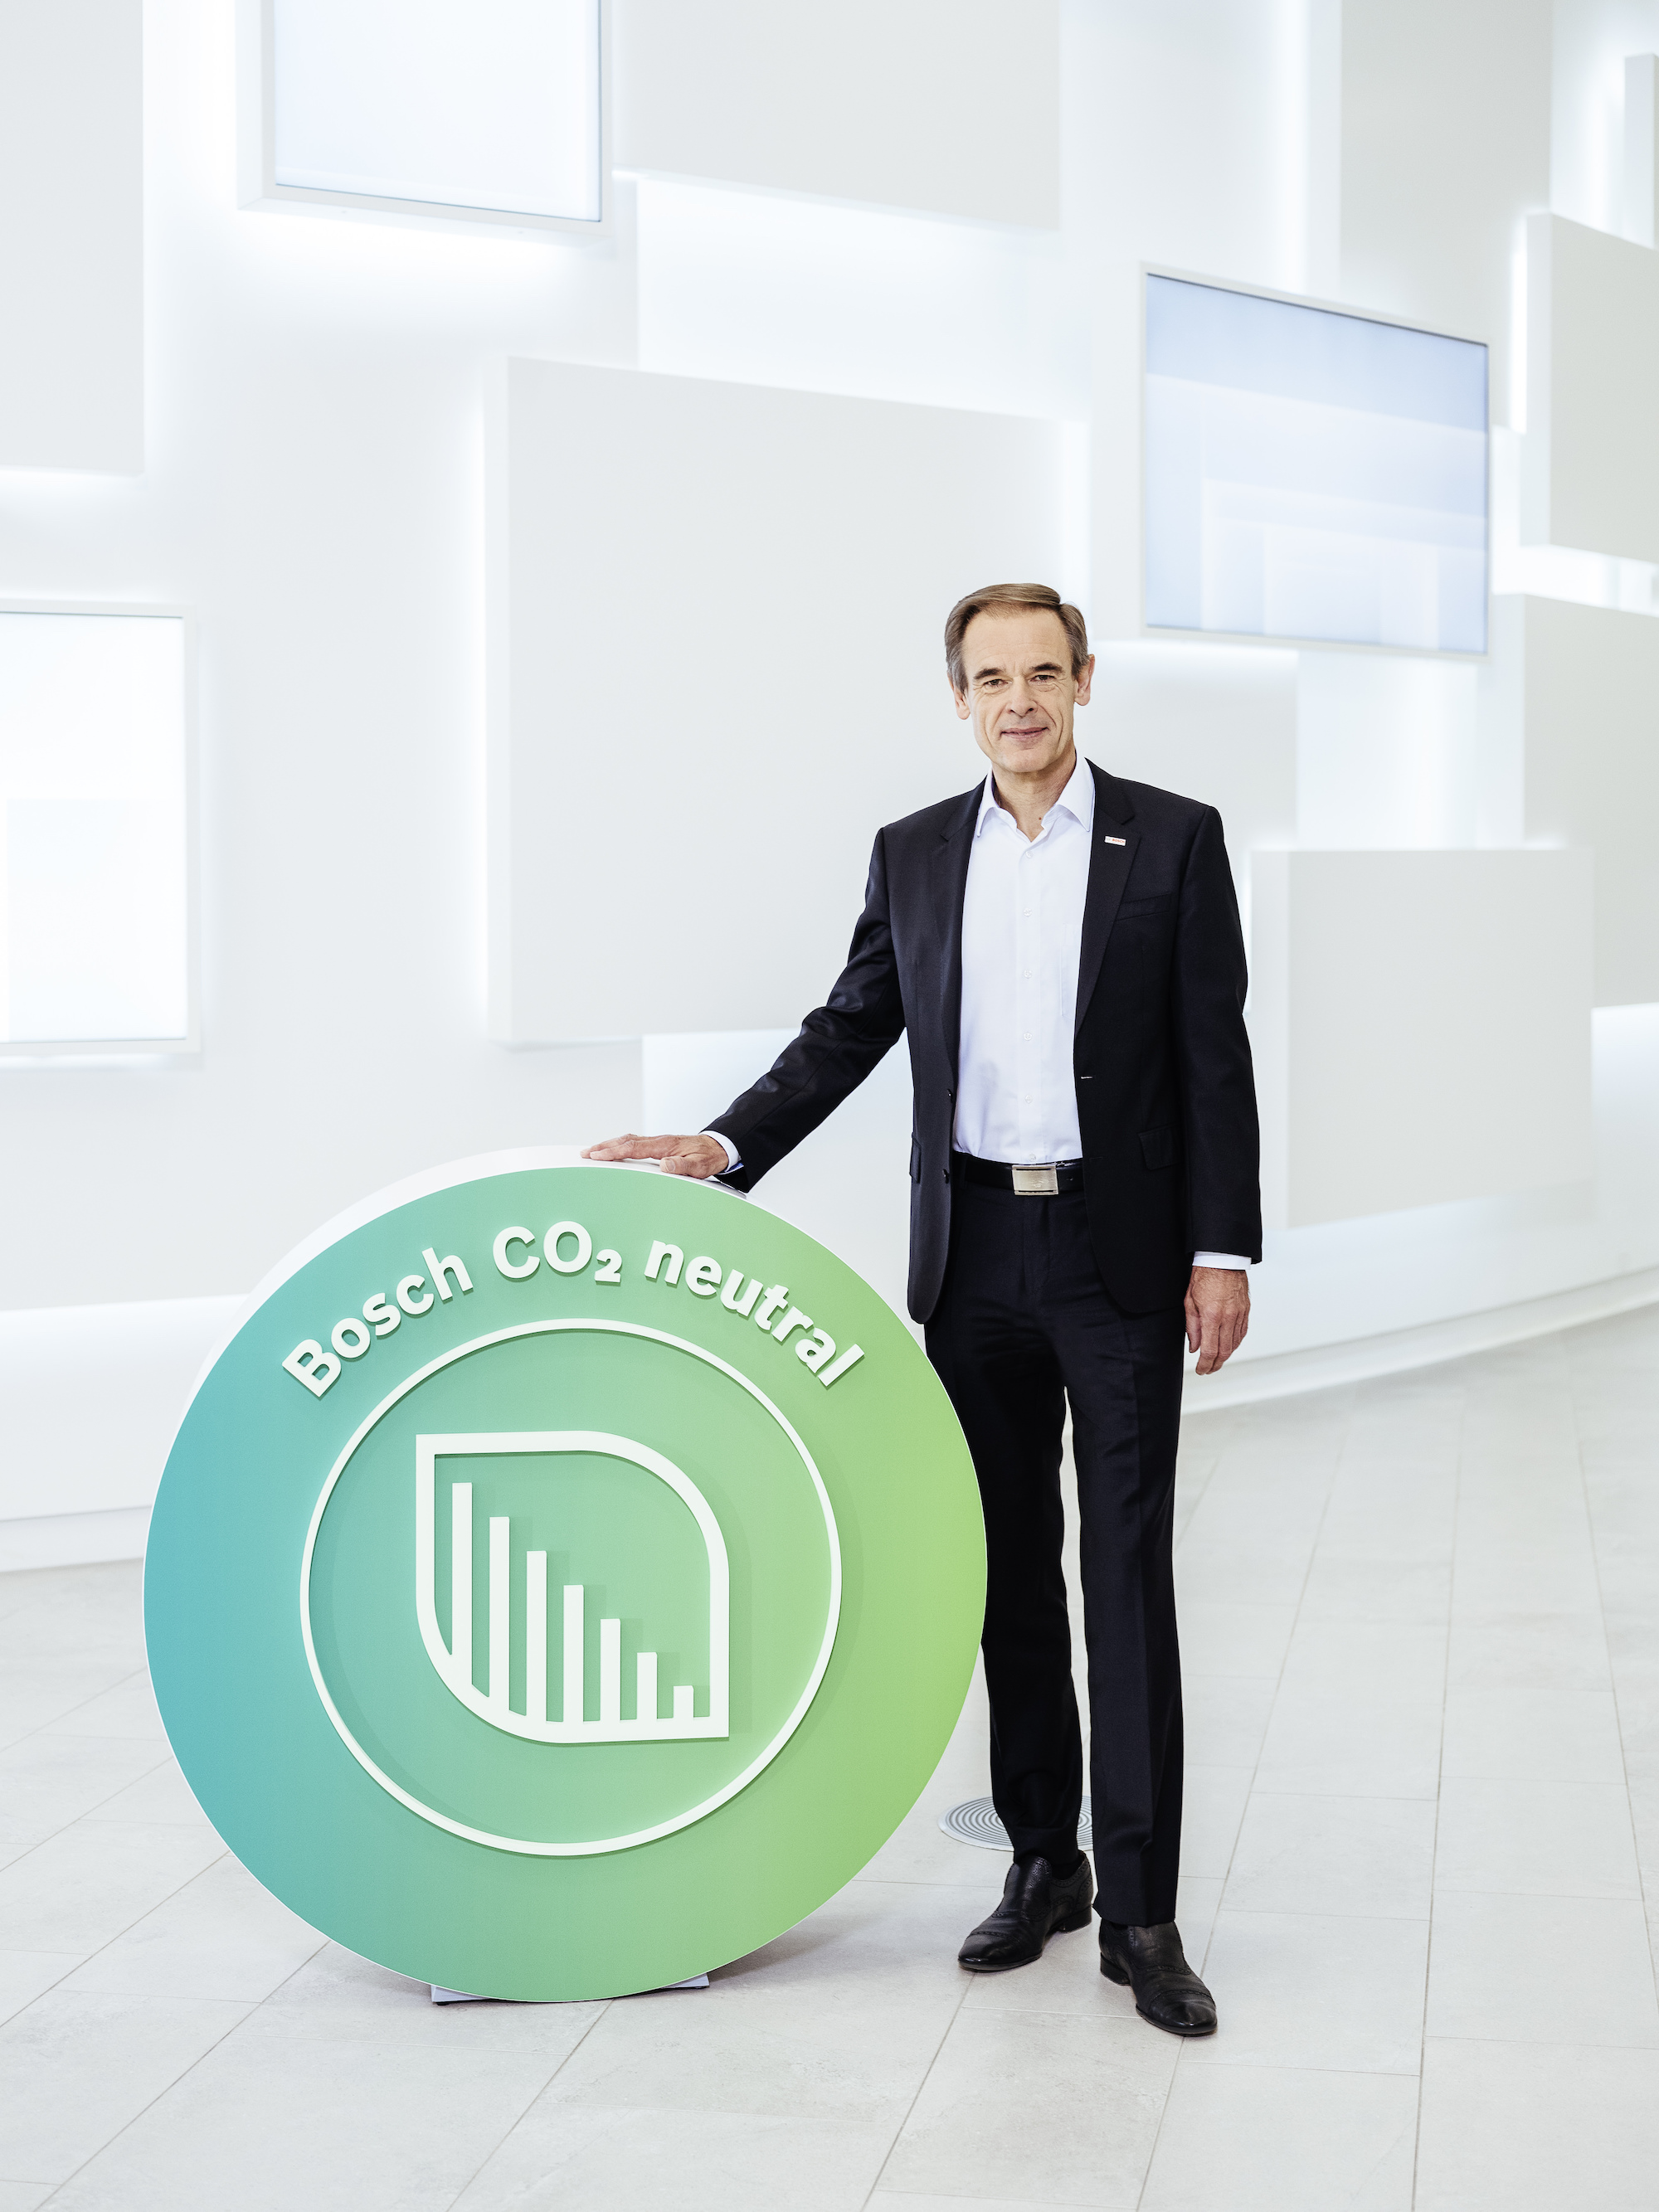 Annual press conference 2019: Bosch to be carbon neutral worldwide by 2020